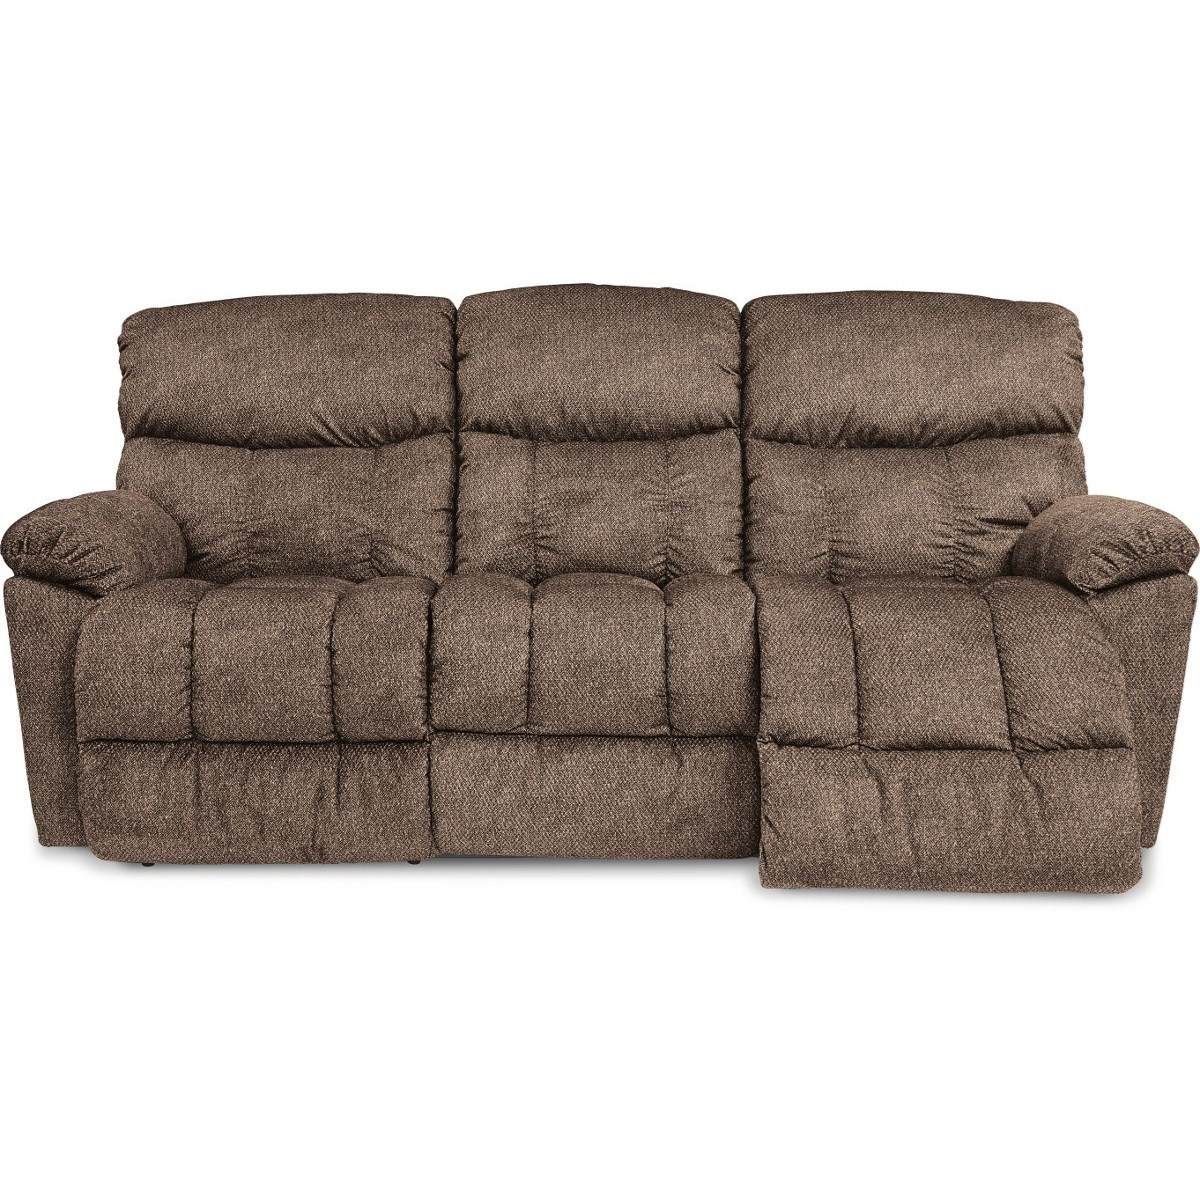 La Z Boy Morrison Casual Reclining Sofa Lindy S